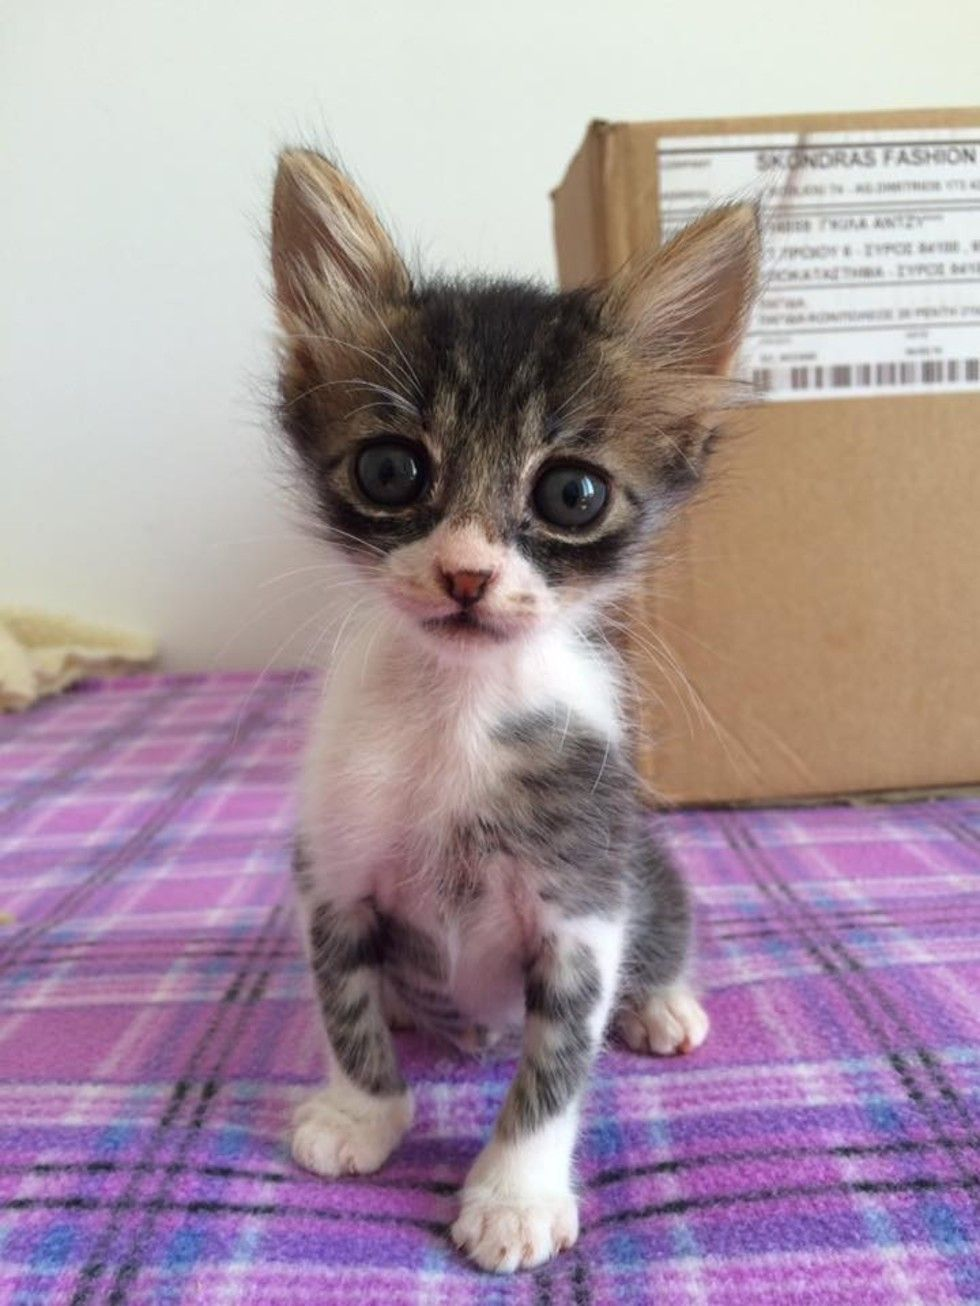 Chili Tiniest Orphaned Kitten Found In Field Cries Out For Love Then And Now Tiny Kitten Cats And Kittens Cat Care